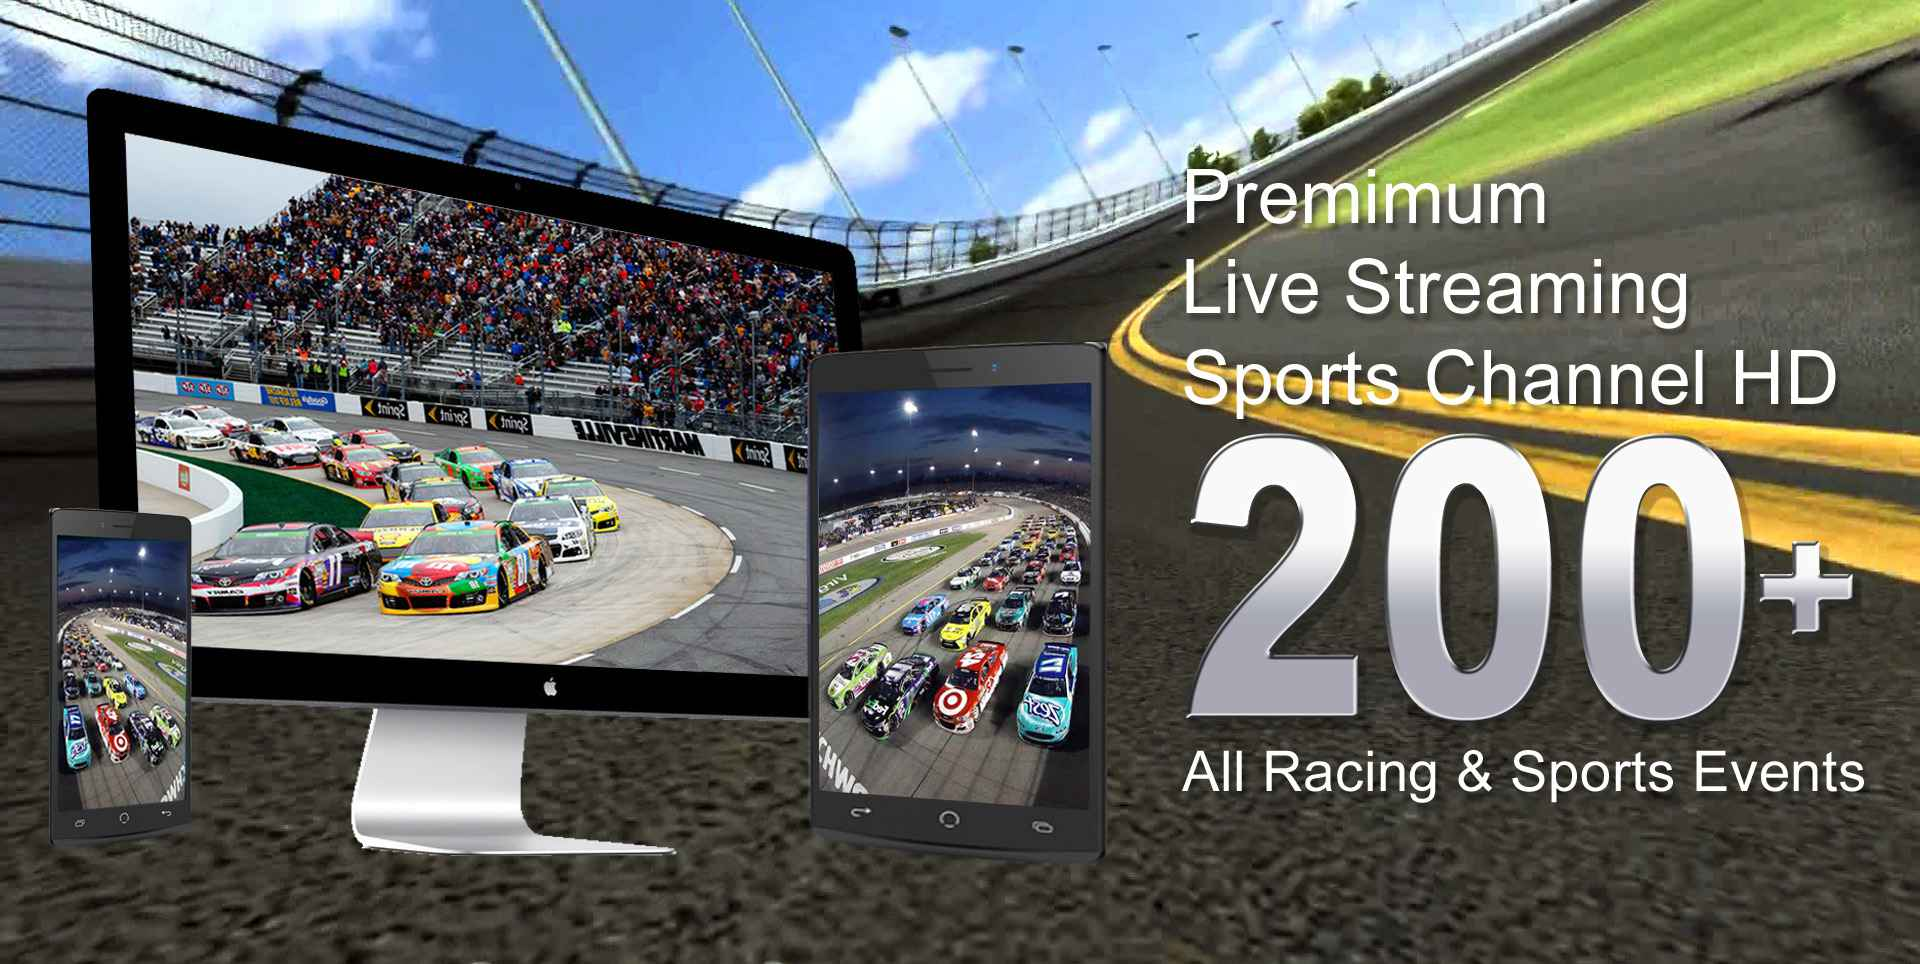 Watch 2014 SFP 250 Live